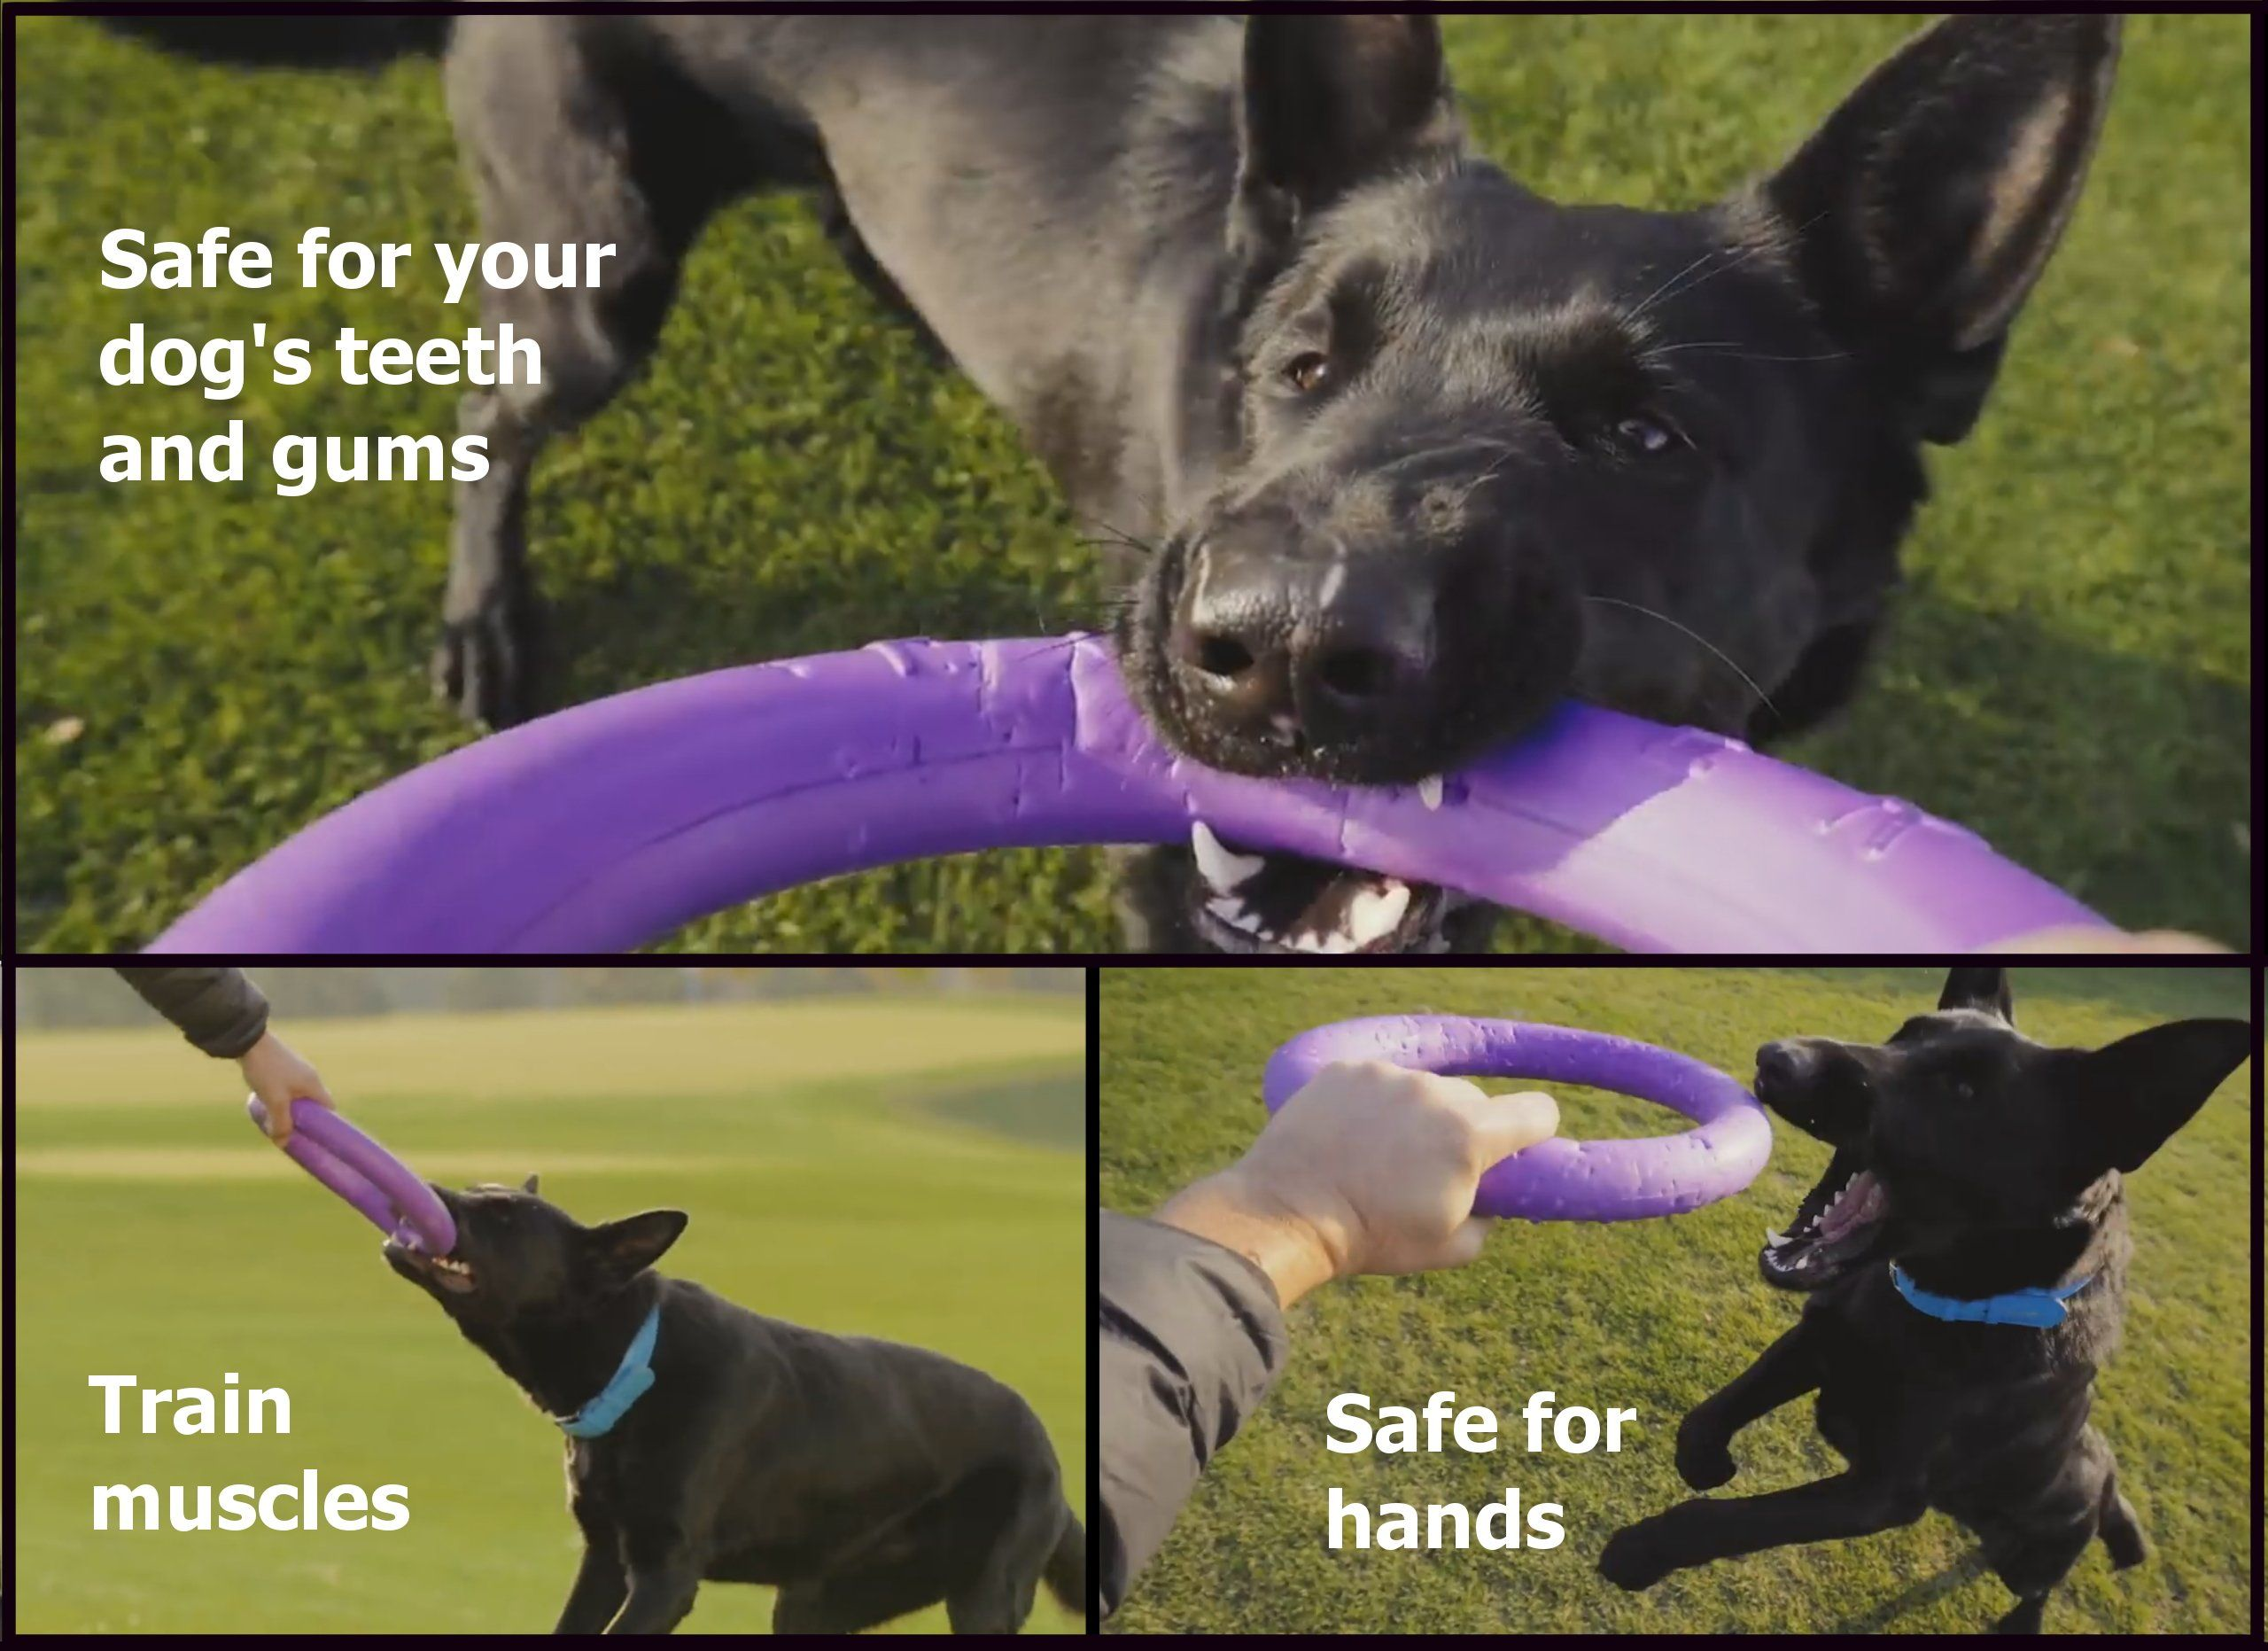 Puller Standard Training Toy For Dogs Two Fetch Rings A Toy For